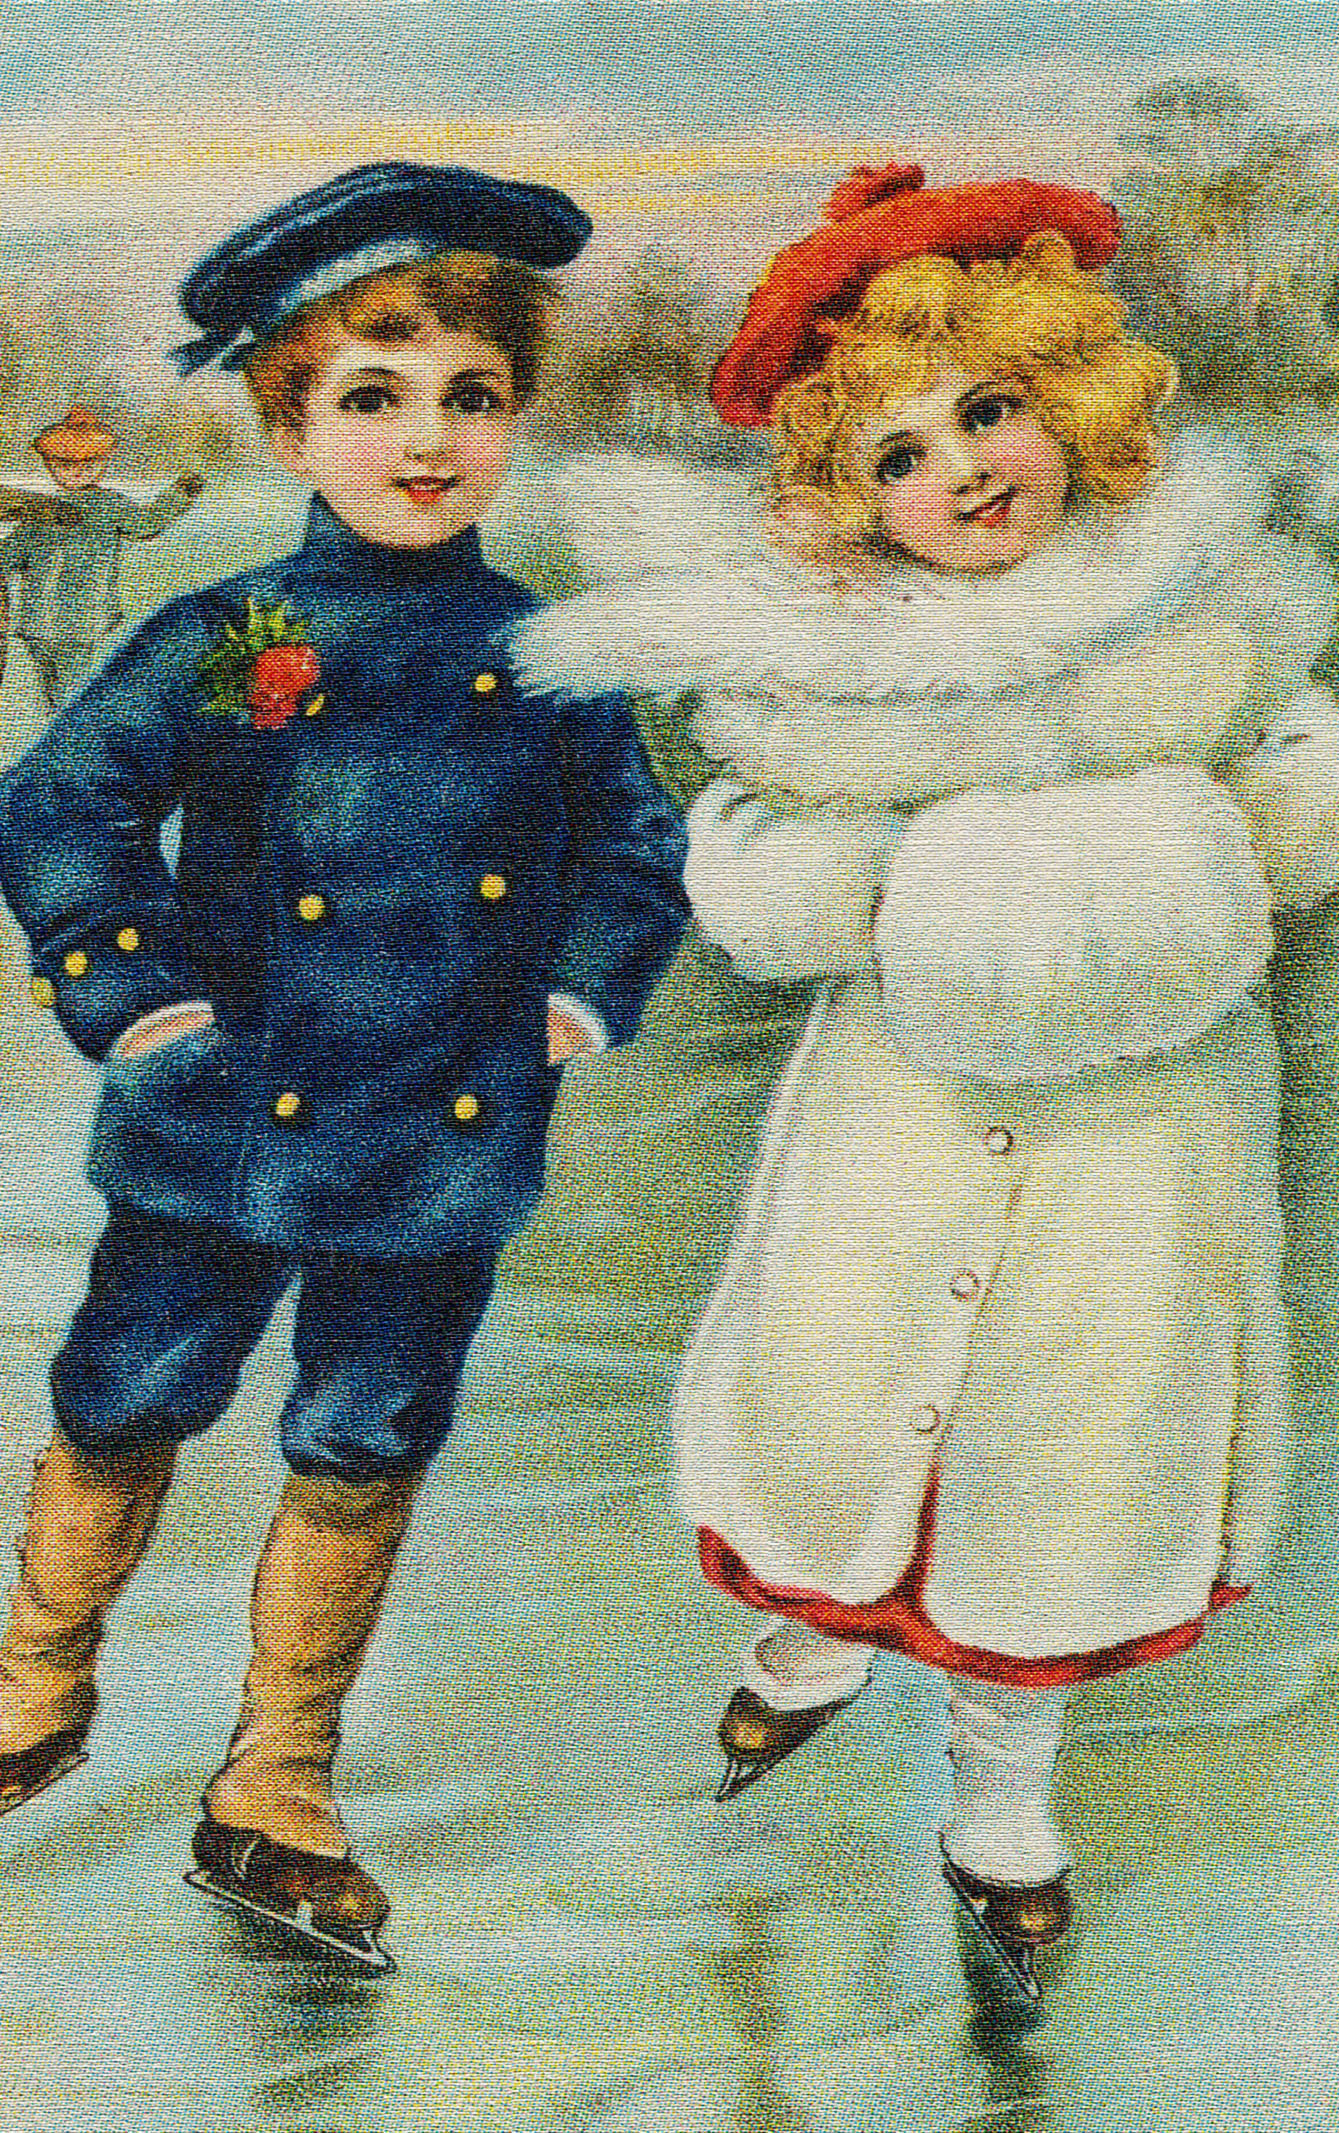 free_clipart_images_winter (6)